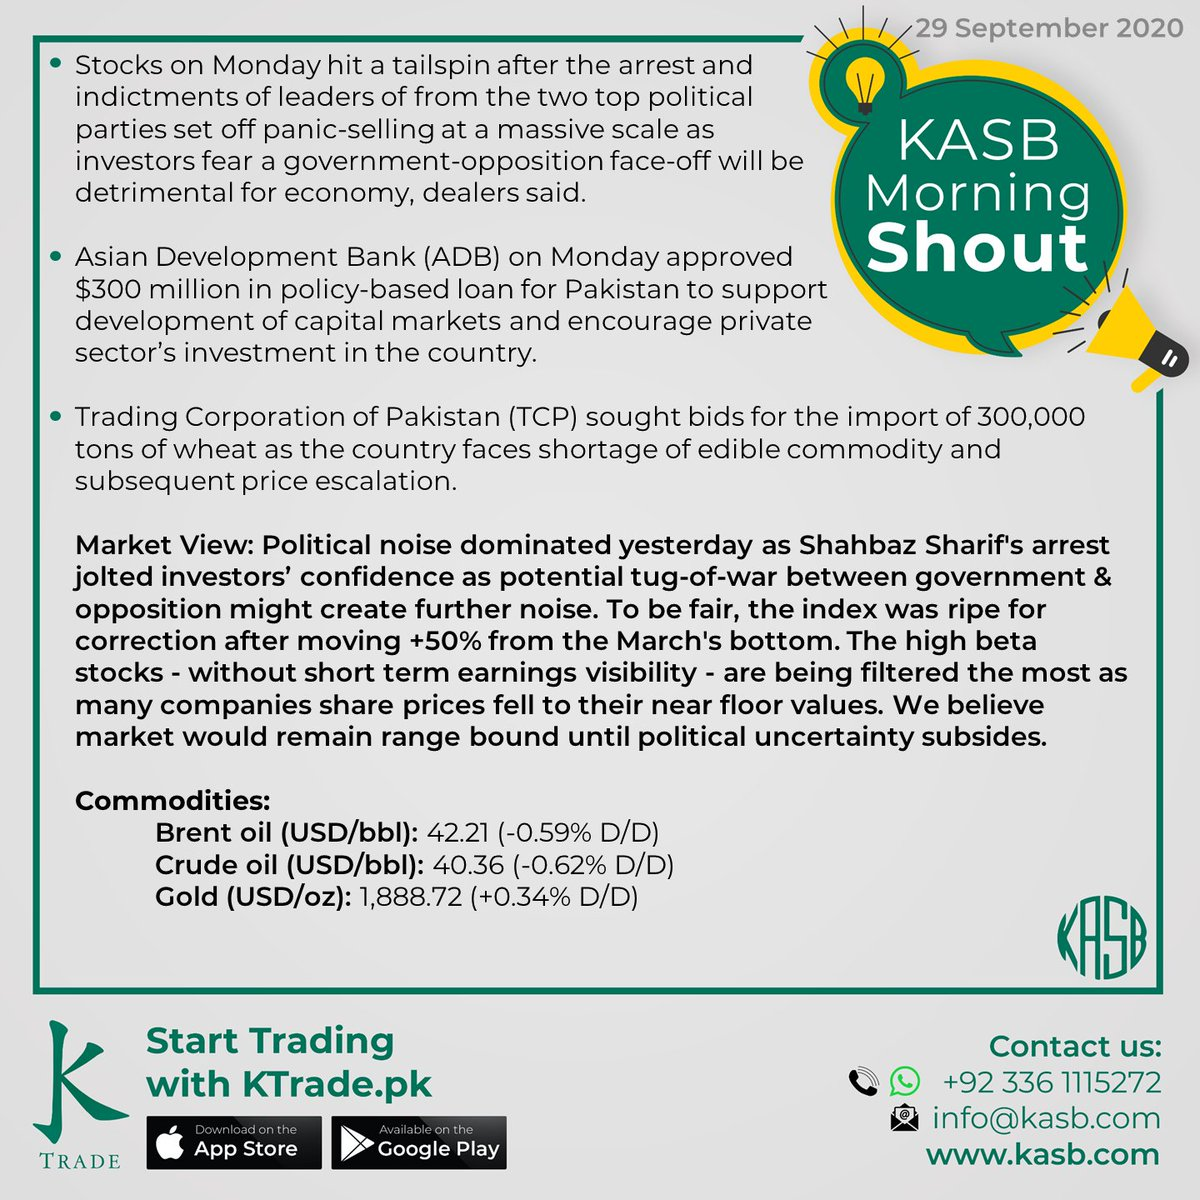 KASB Morning Shout: Our views on today's news #kasb #smartinvesting #psx #stockmarket #KTrade #onlinetrading #pakistaneconomy #imrankhan #sbp #inflation #kse100 #brokeragehouse #psxstocks #marketupdate #emergingmarkets #frontiermarkets #news #morning #today #views https://t.co/WIeaX1mpjo